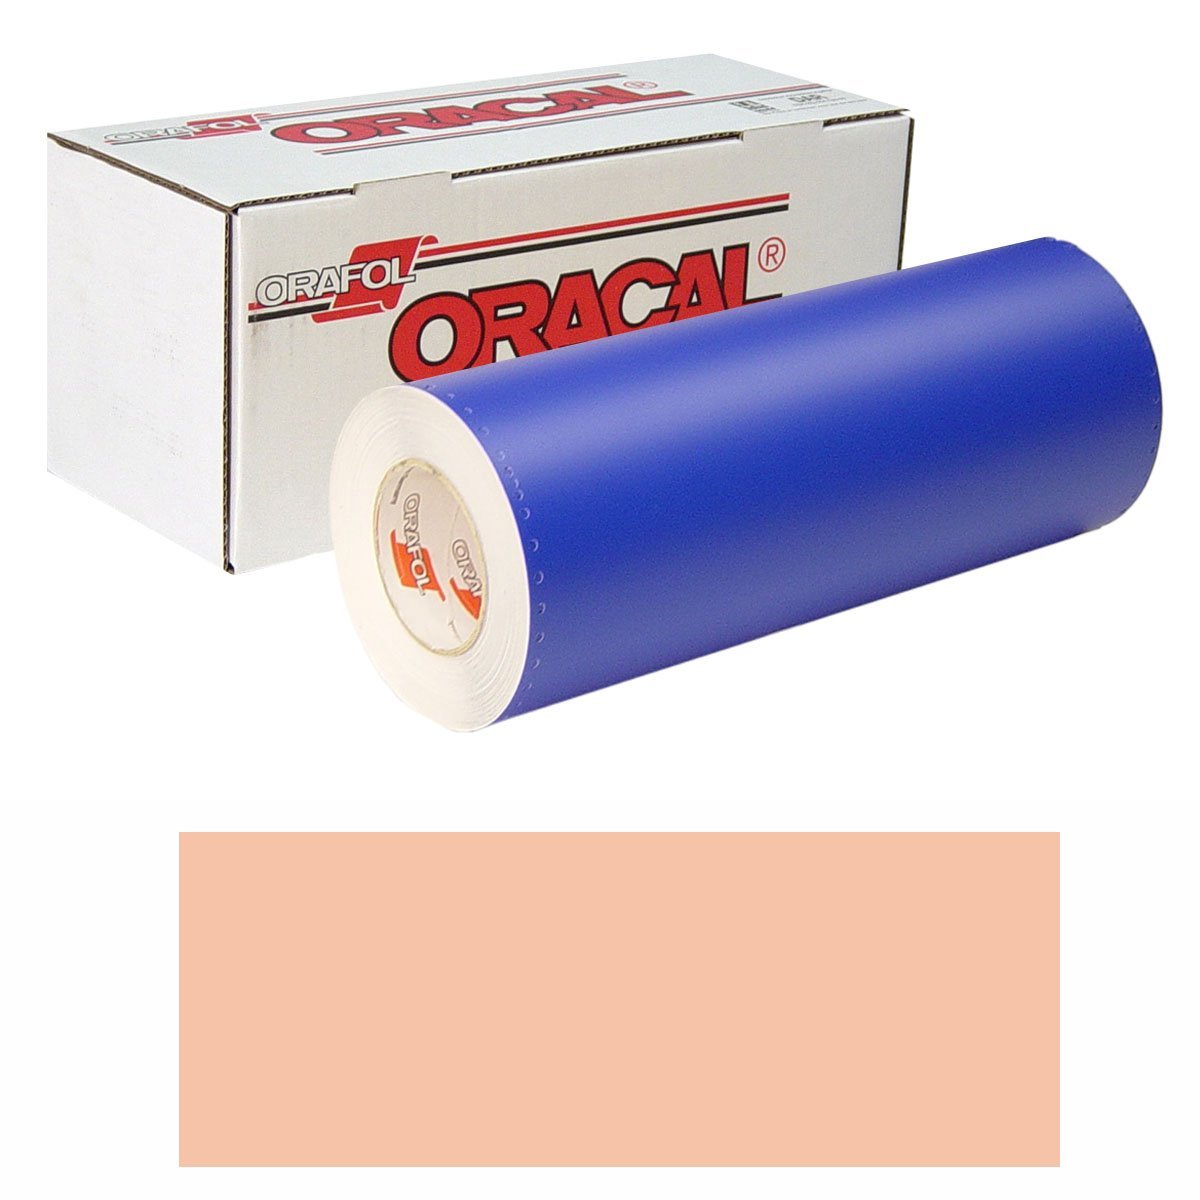 ORACAL 8300 15In X 50Yd 089 Salmon Pink